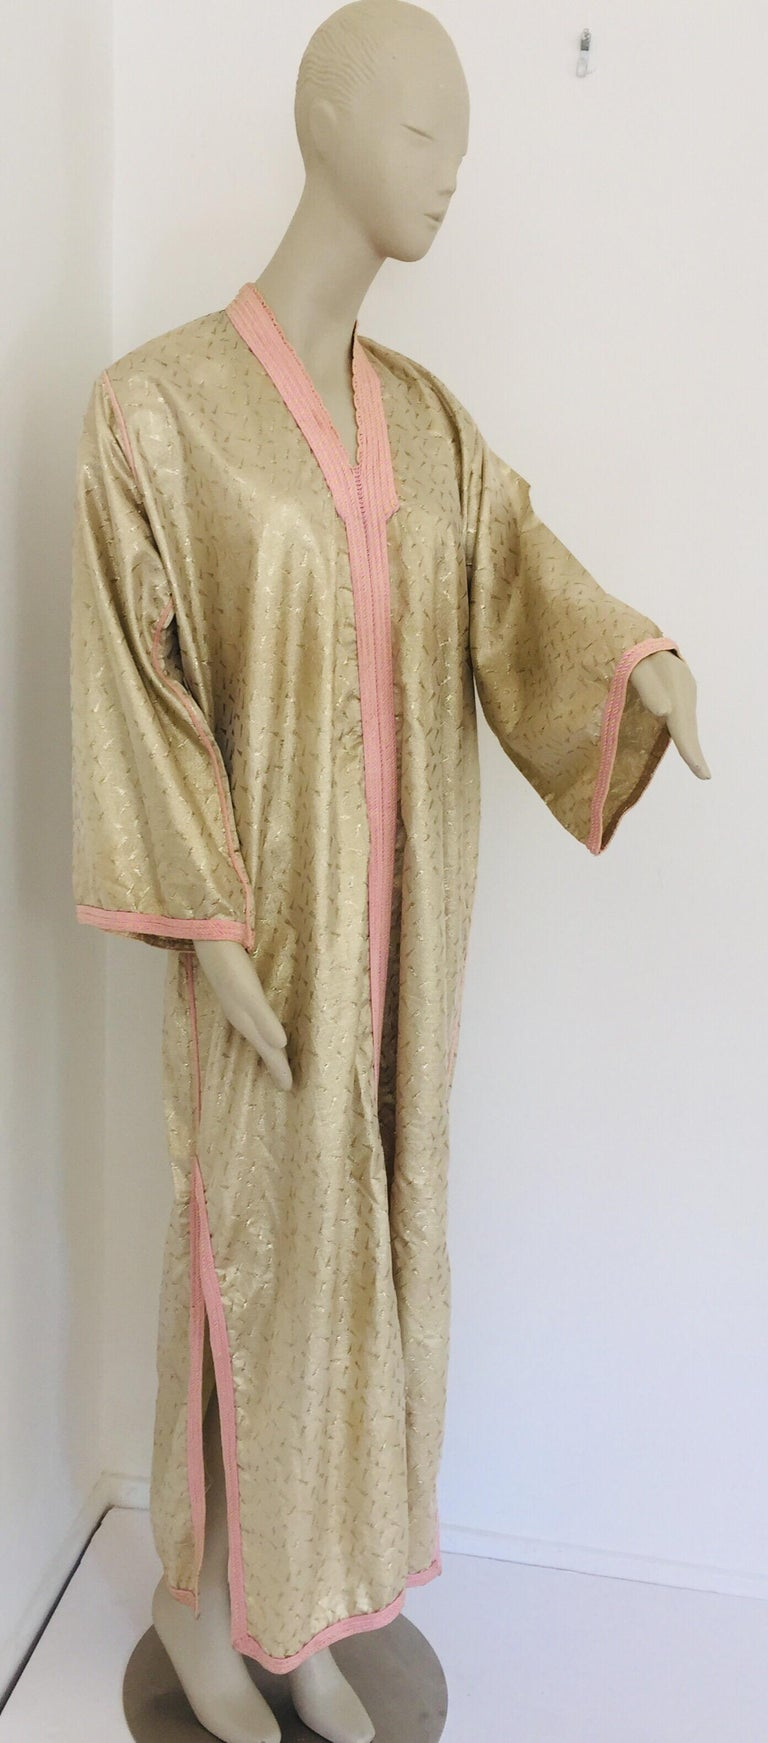 Moroccan evening or interior gold metallic brocade dress kaftan with pink trim. Handmade vintage exotic, 1970s metallic brocade caftan gown from North Africa, Morocco. The luminous gold metallic Moroccan caftan maxi dress is made in a subtle